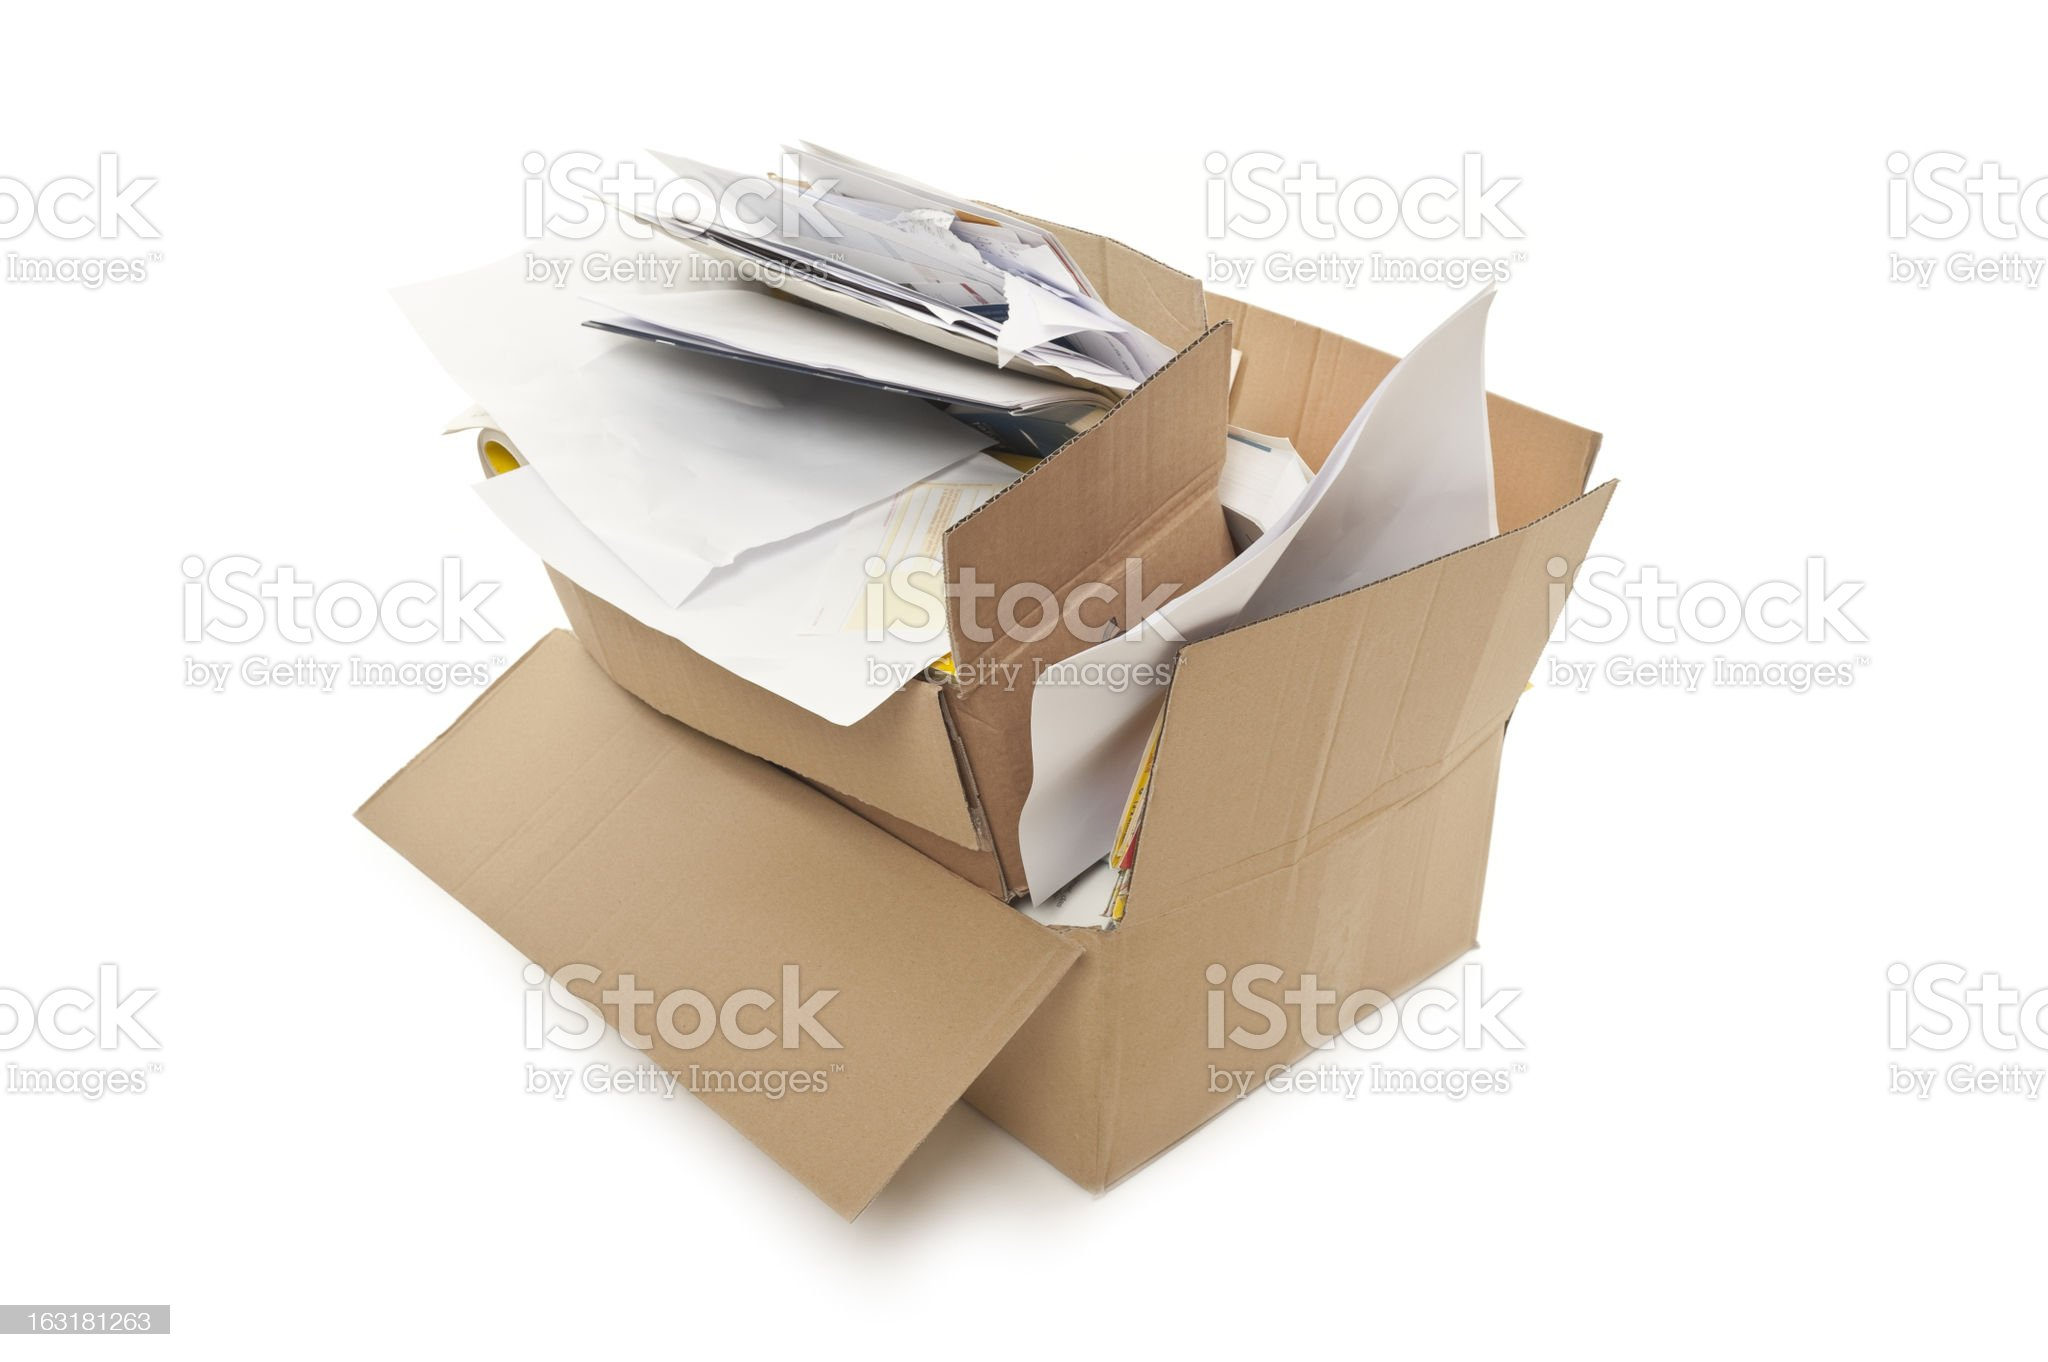 Two stacked cardboard boxes overflowing with office papers  royalty-free stock photo